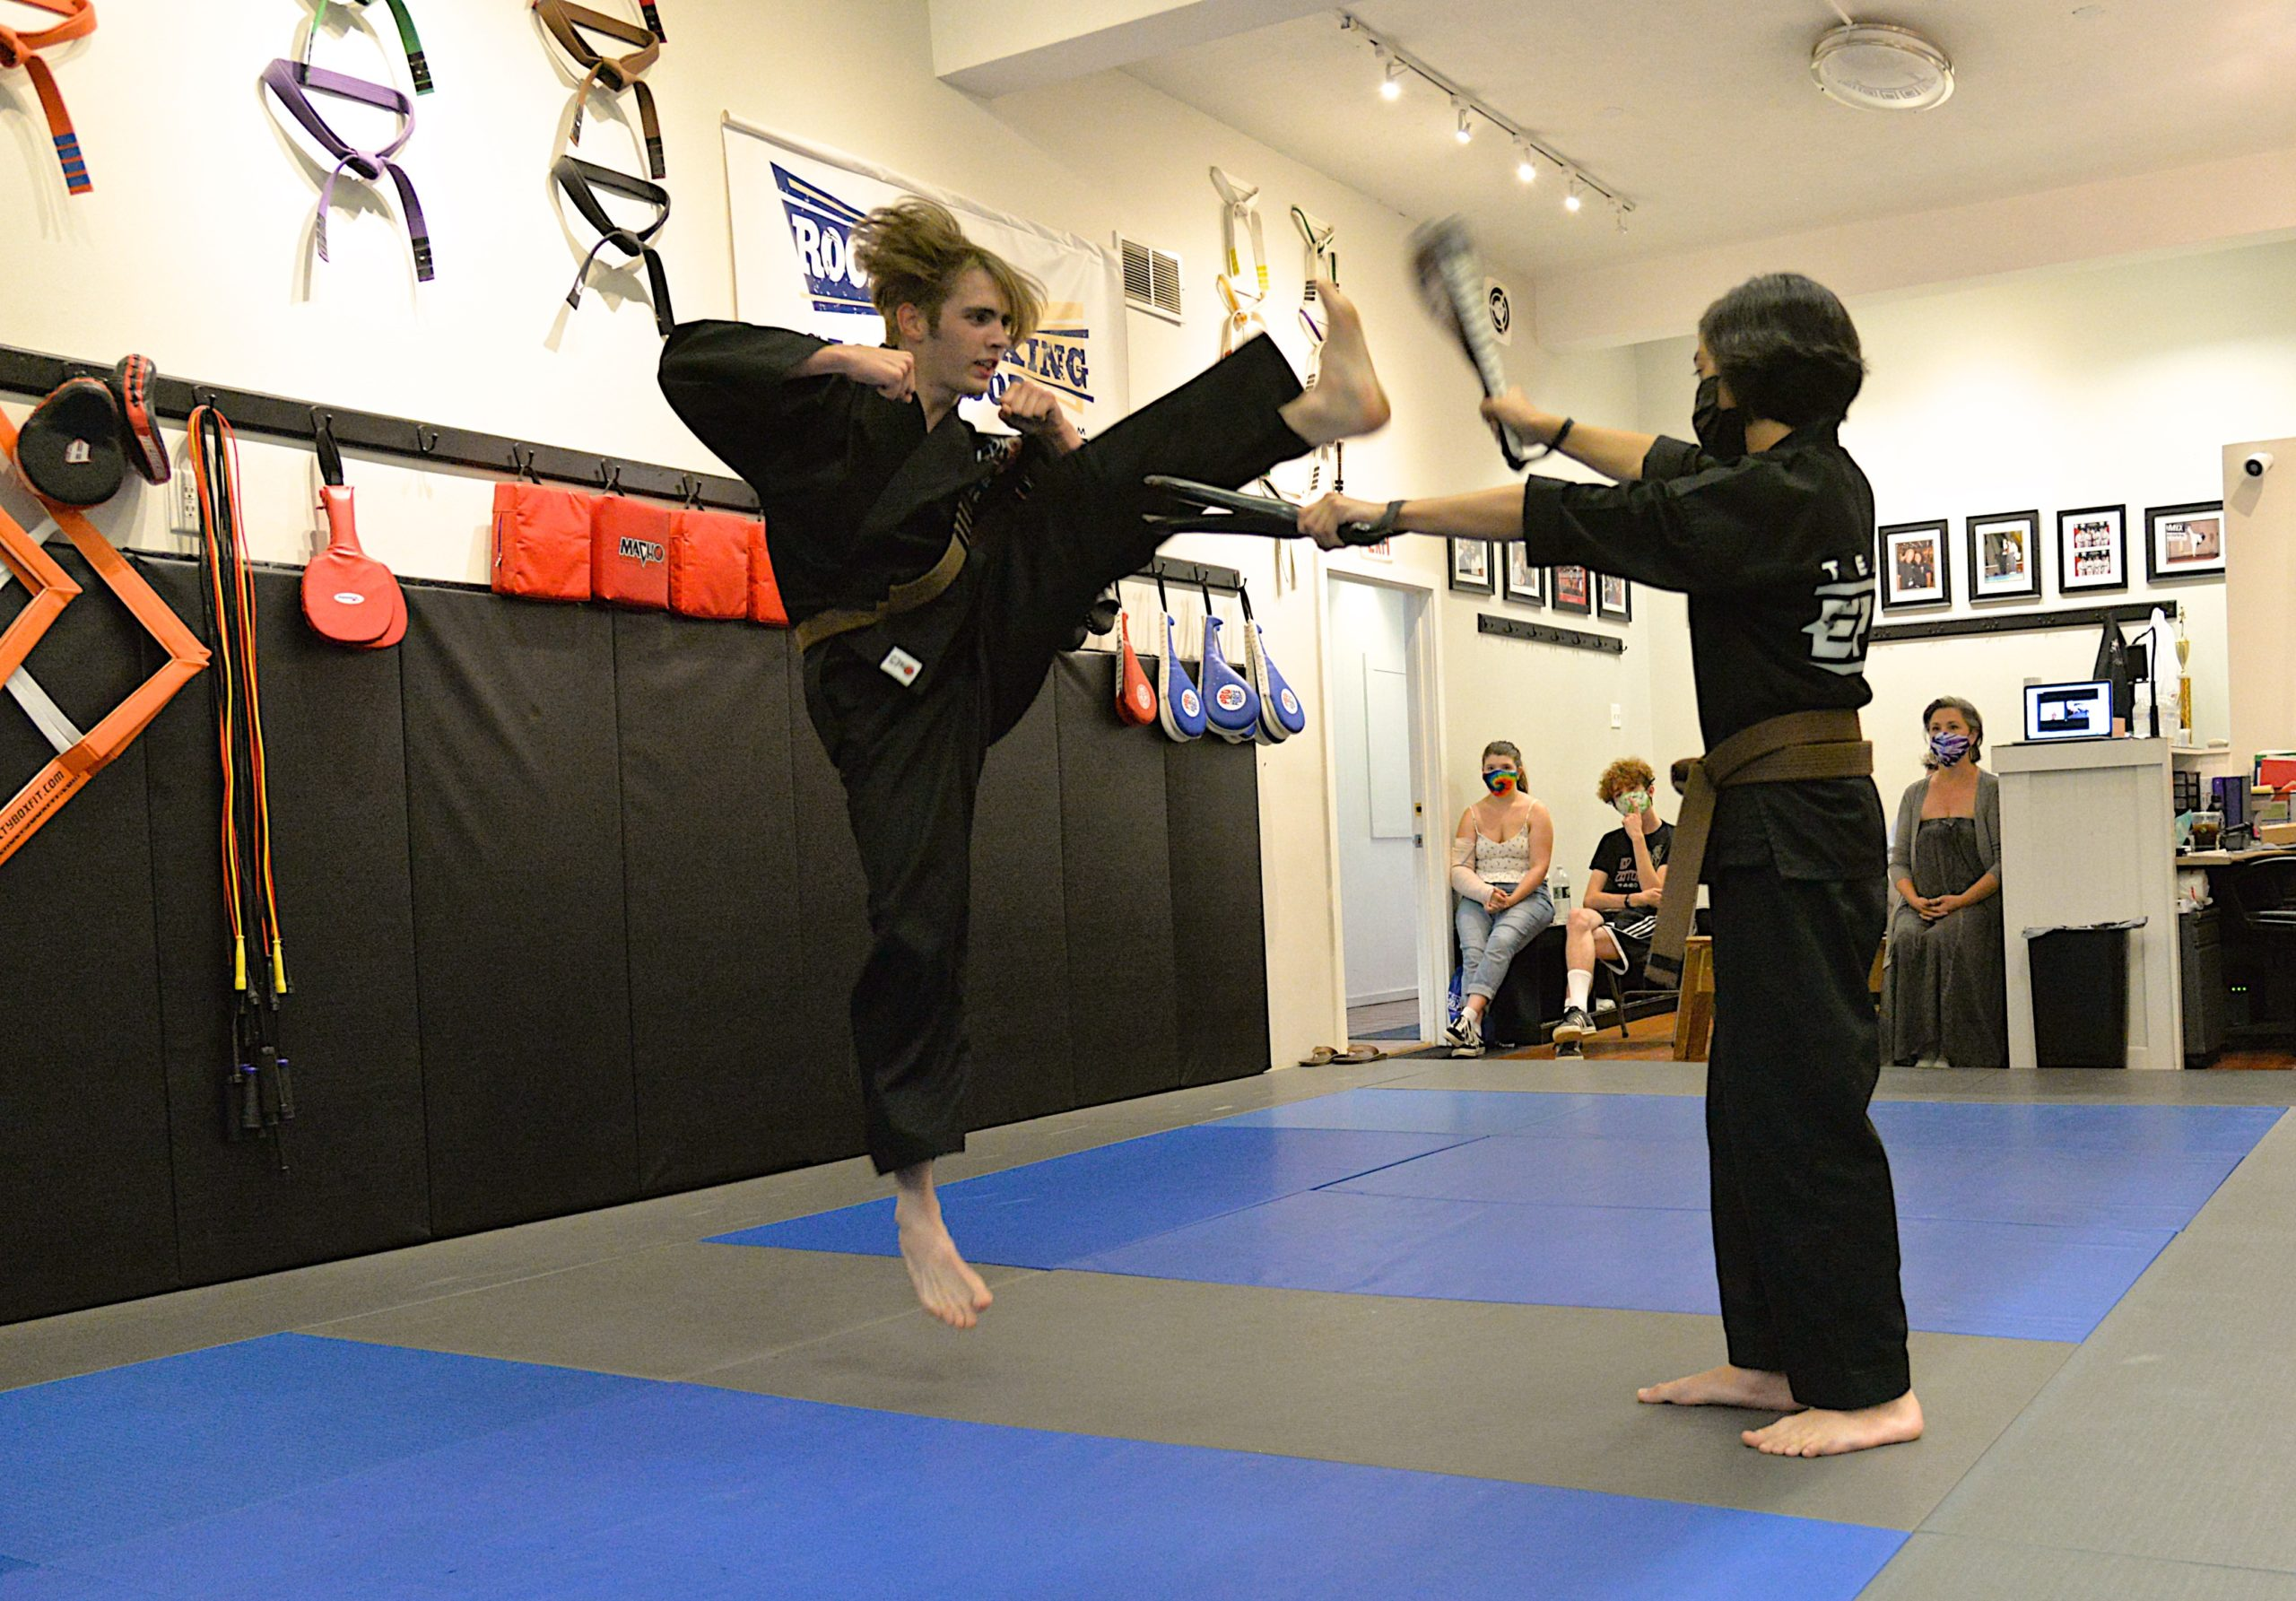 Thomas Schiavoni went through a number of tests this past Saturday, July 31, at EPIC Martial Arts in Sag Harbor to earn his black belt.